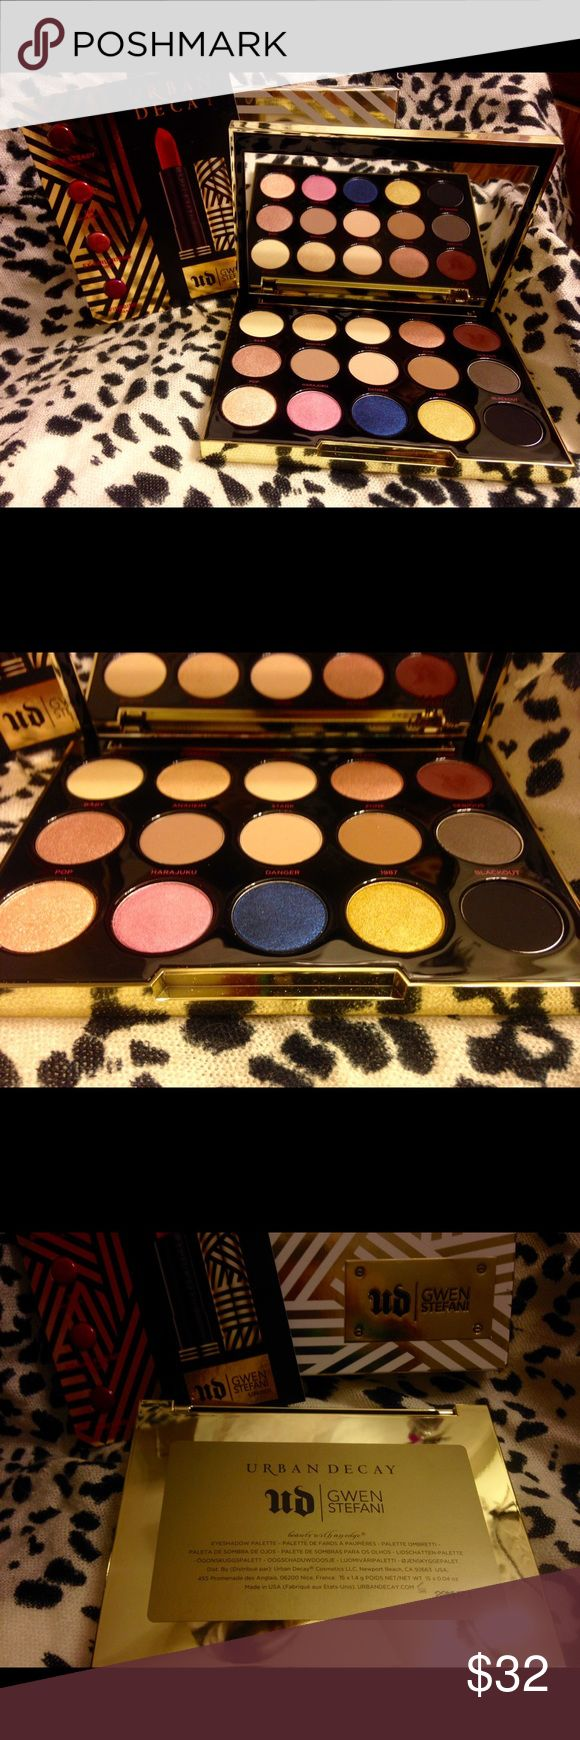 """Urban Decay Gwen Stefani Palette - Limited Editon Like new! Some of the shimmery colors have been swatched as well as """"punk"""". It comes in the box and with the unopened Gwen Stefani lipstick samples. I'm only selling because i'm looking for something different and never reach for this one like i thought i would. 100% authentic. This palette is no longer available in stores as it is limited edition. Urban Decay Makeup Eyeshadow"""